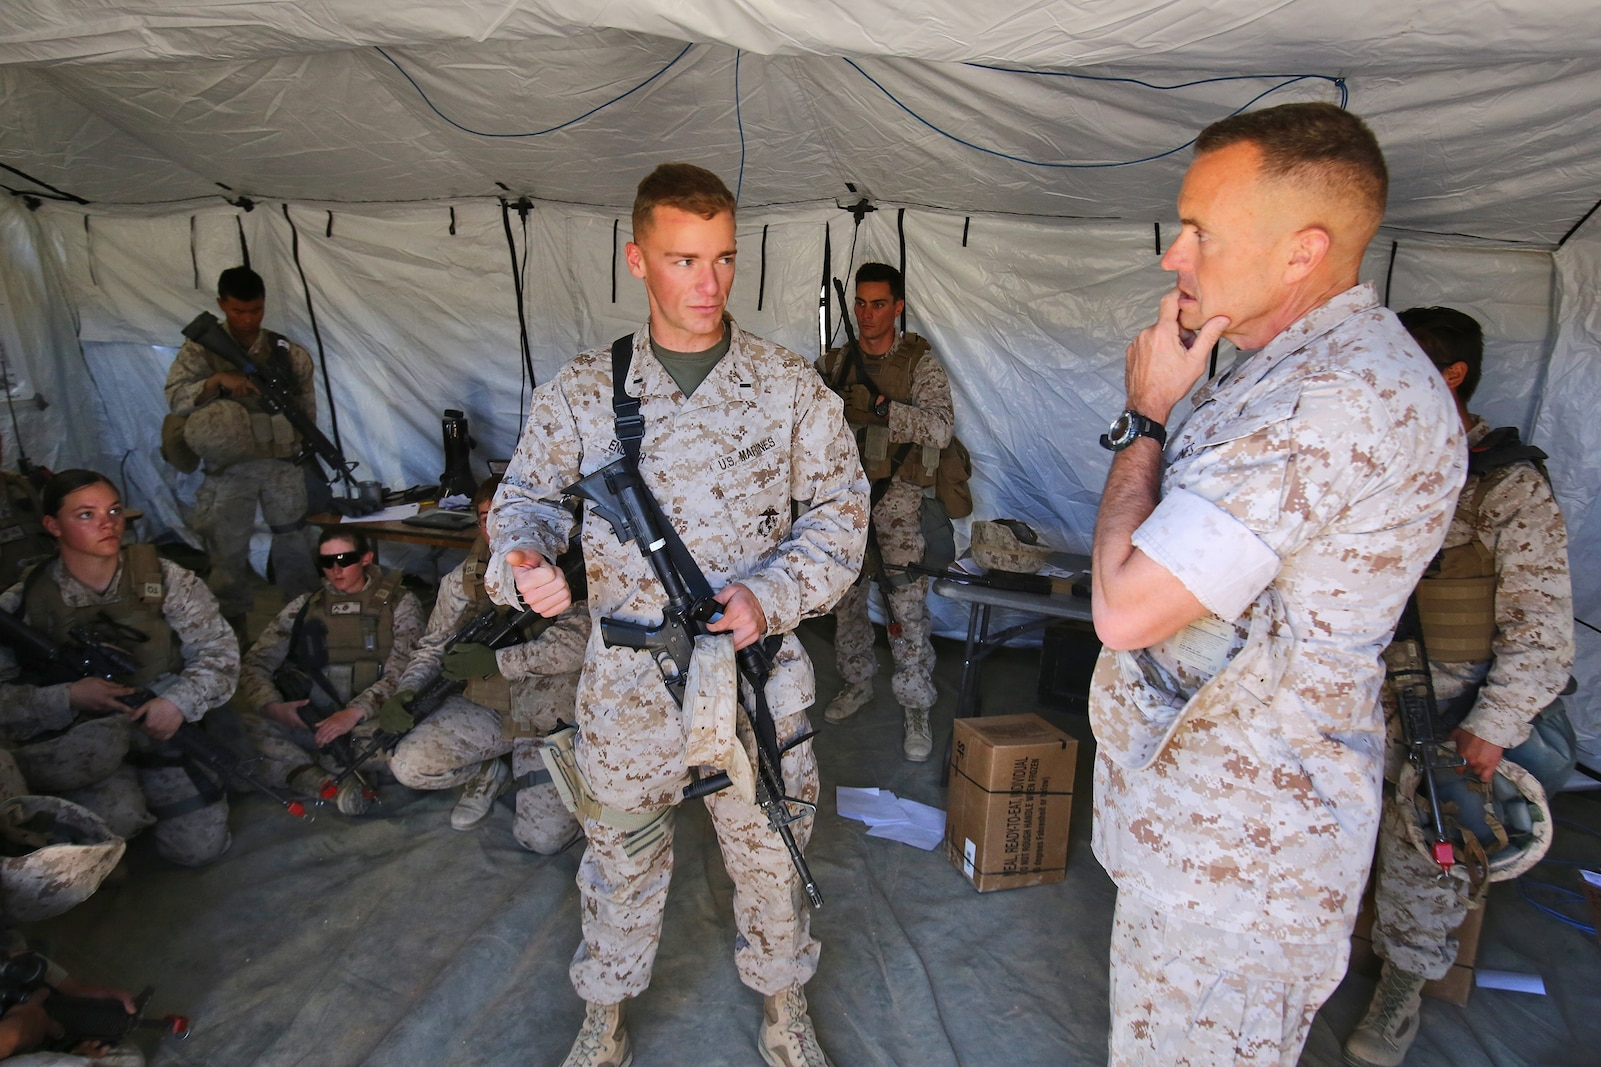 First Lt. Daniel English, company commander, Headquarters and Support Company, Combat Logistics Battalion 1, Combat Logistics Regiment 1, 1st Marine Logistics Group, talks with Brig. Gen. Vincent A. Coglianese, commanding general, 1st MLG, during Integrated Training Exercise 3-14 aboard Marine Corps Air Ground Combat Center Twenty-nine Palms, Calif., March 21, 2014. The month-long ITX prepares the battalion for its role, as the logistics combat element, in the final combat deployment of Operation Enduring Freedom.